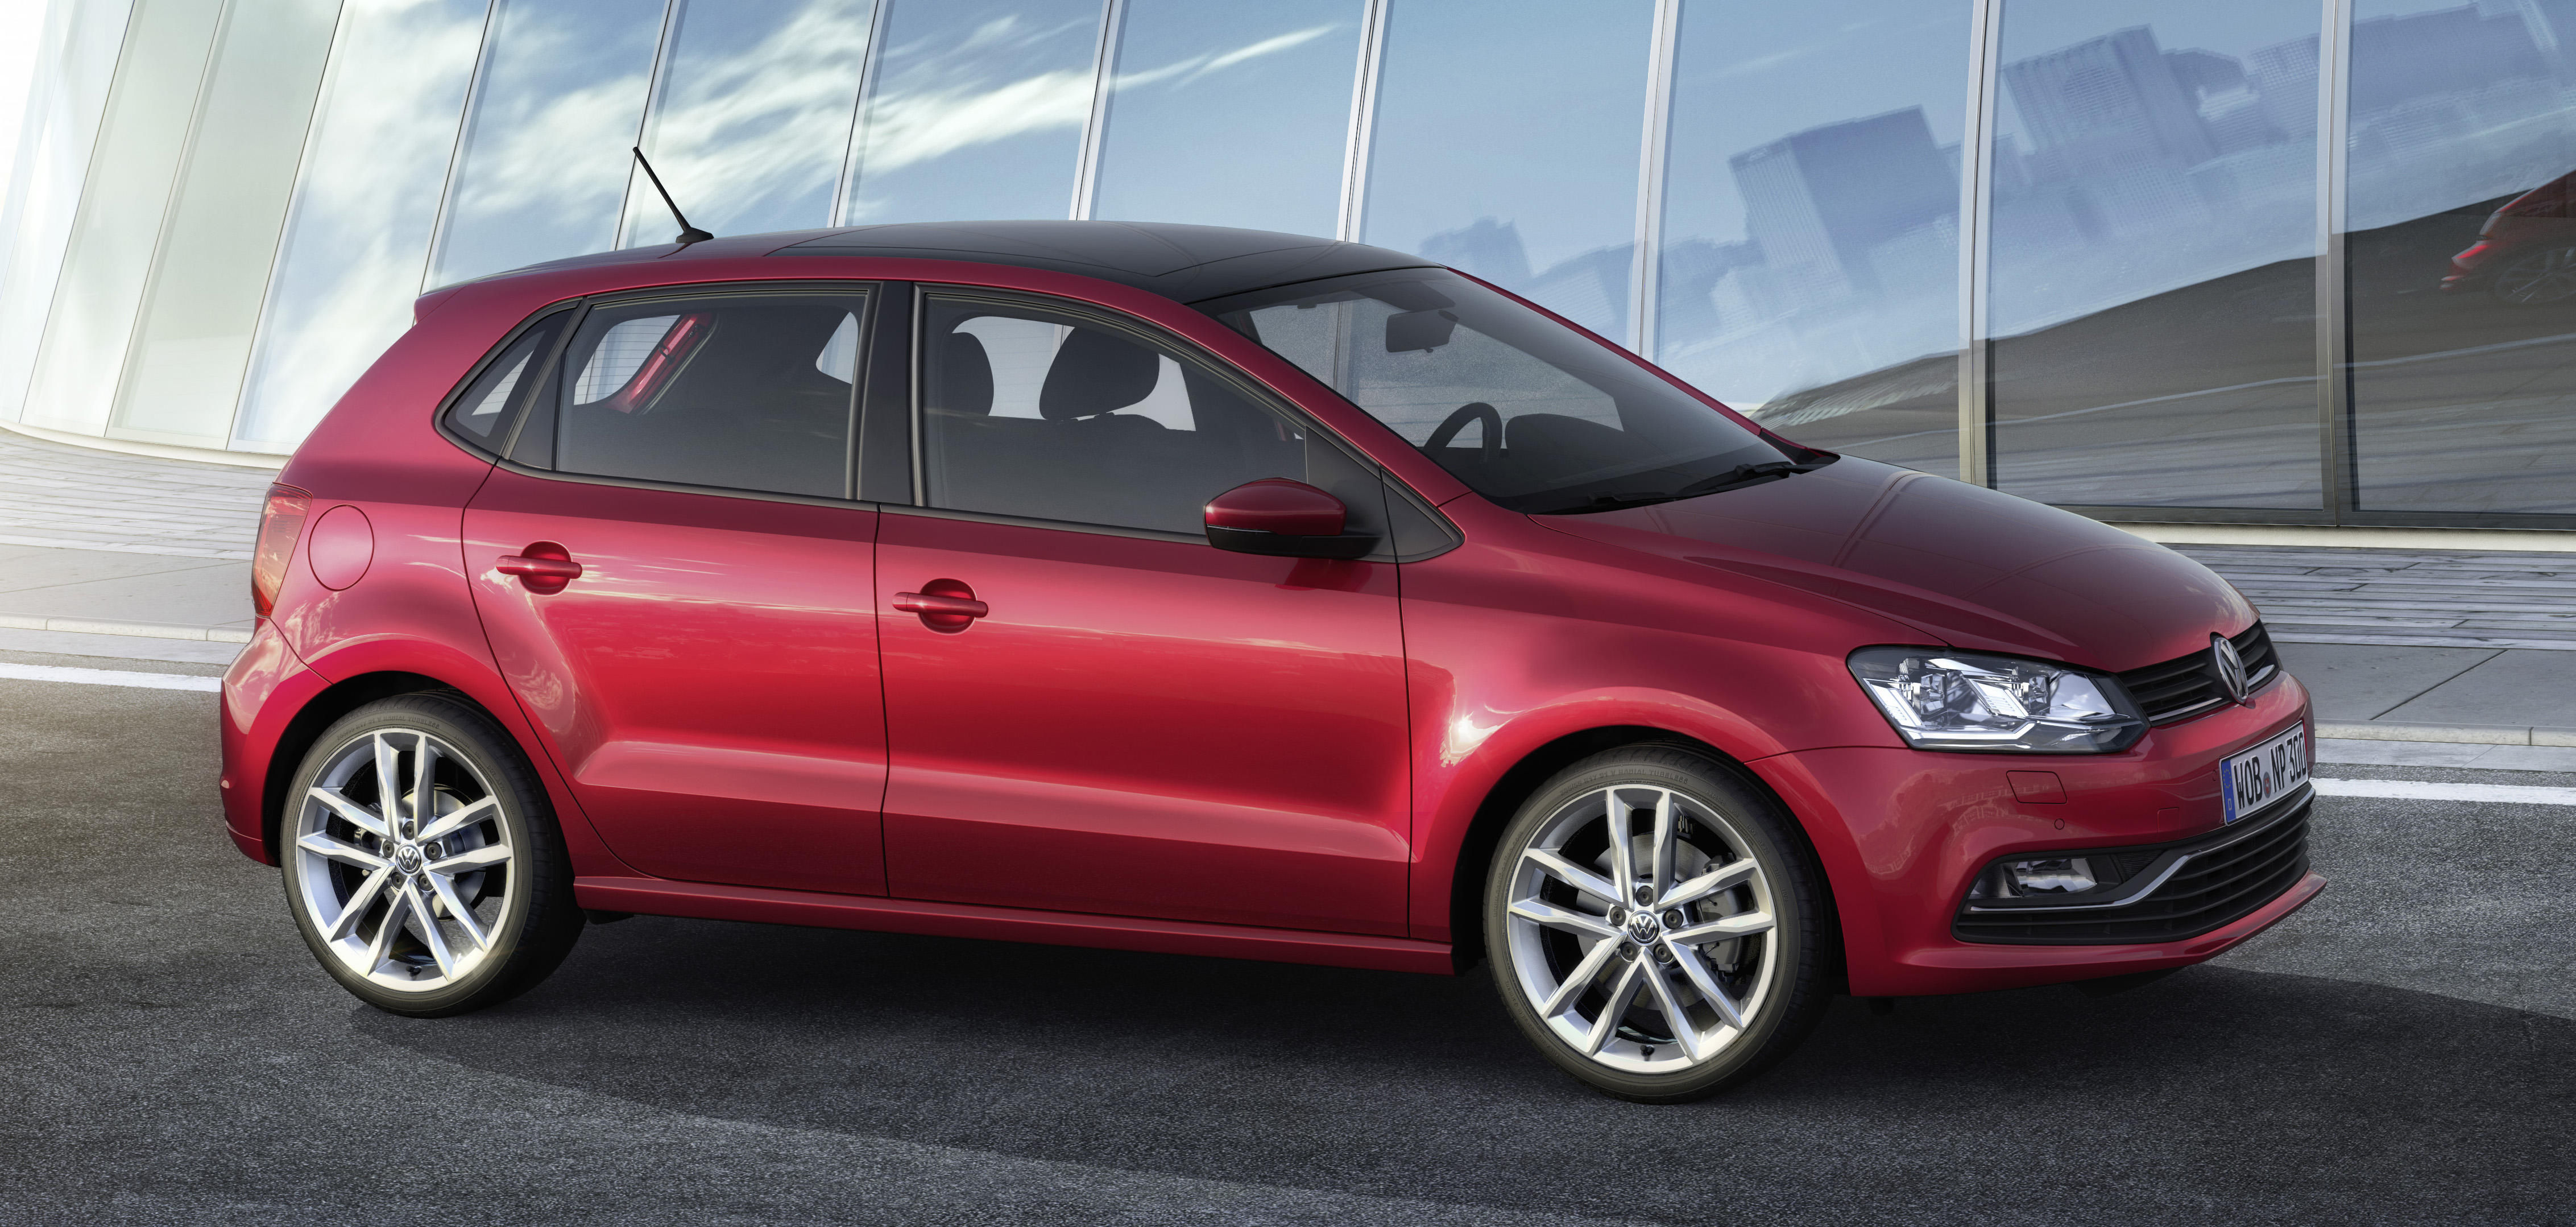 2014 Volkswagen Polo Facelift Gets New Technology Image 224989